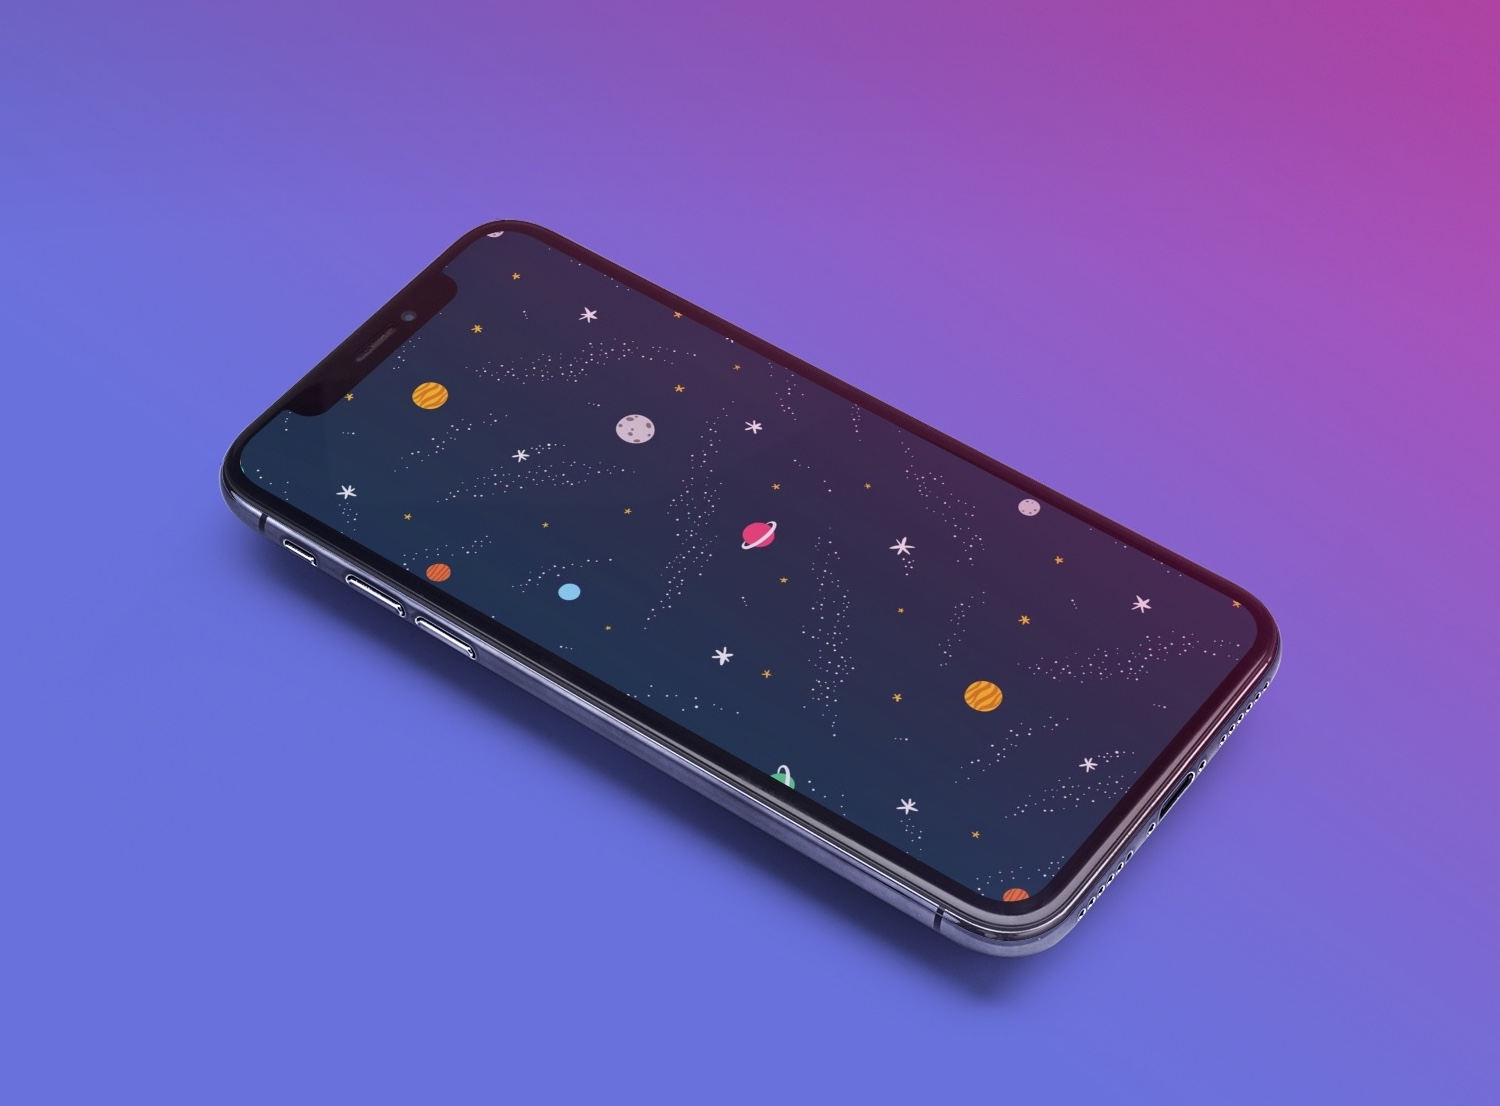 Download Ipad Space Wallpaper Hd Gallery: Download Space Wallpapers For IPhone, IPad, And Desktop